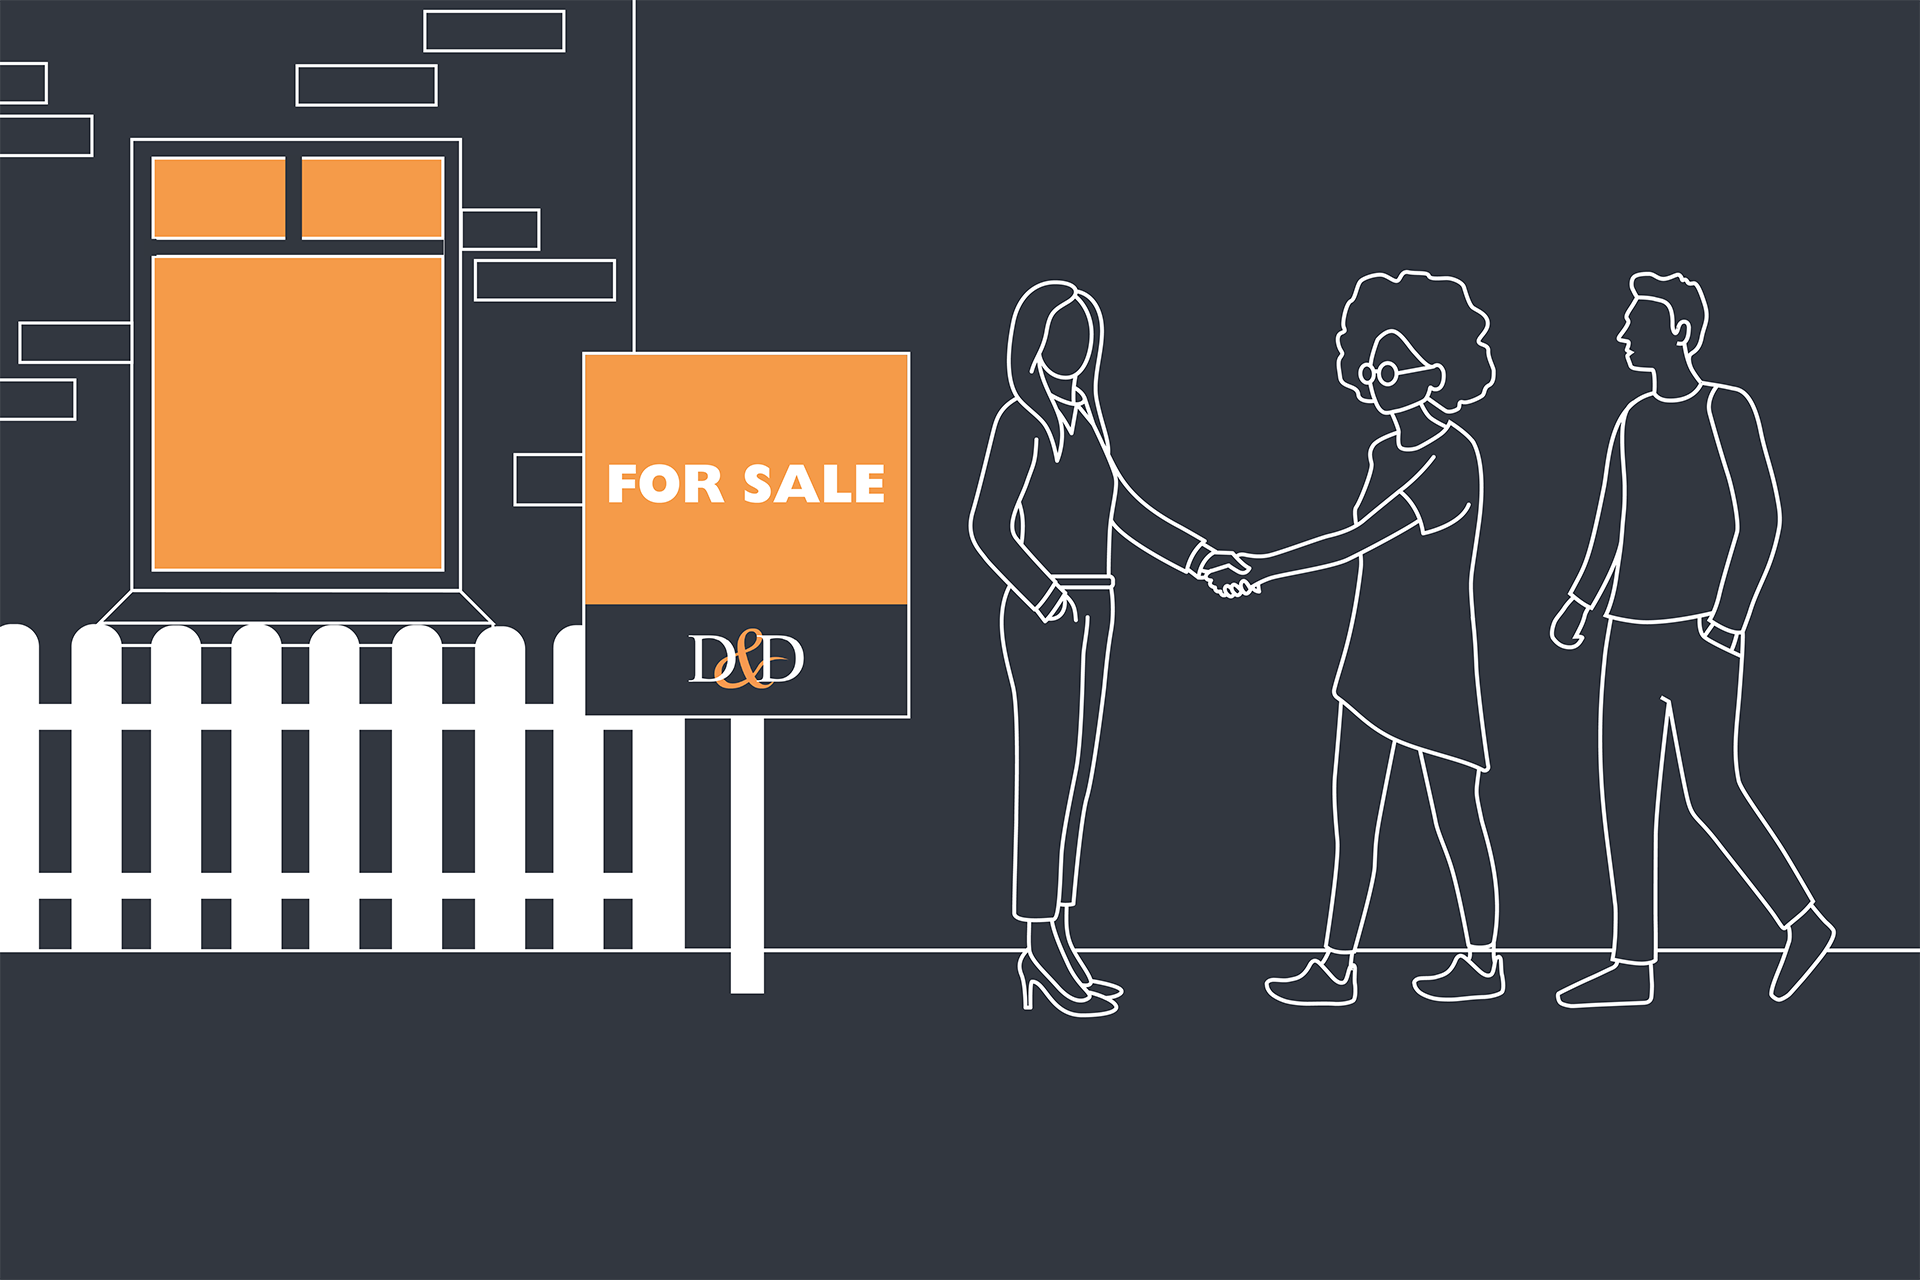 Illustration of a couple shaking hands with a Davies & Davies estate agent after buying a property as a result of the new 95% loan-to-value mortgage scheme.